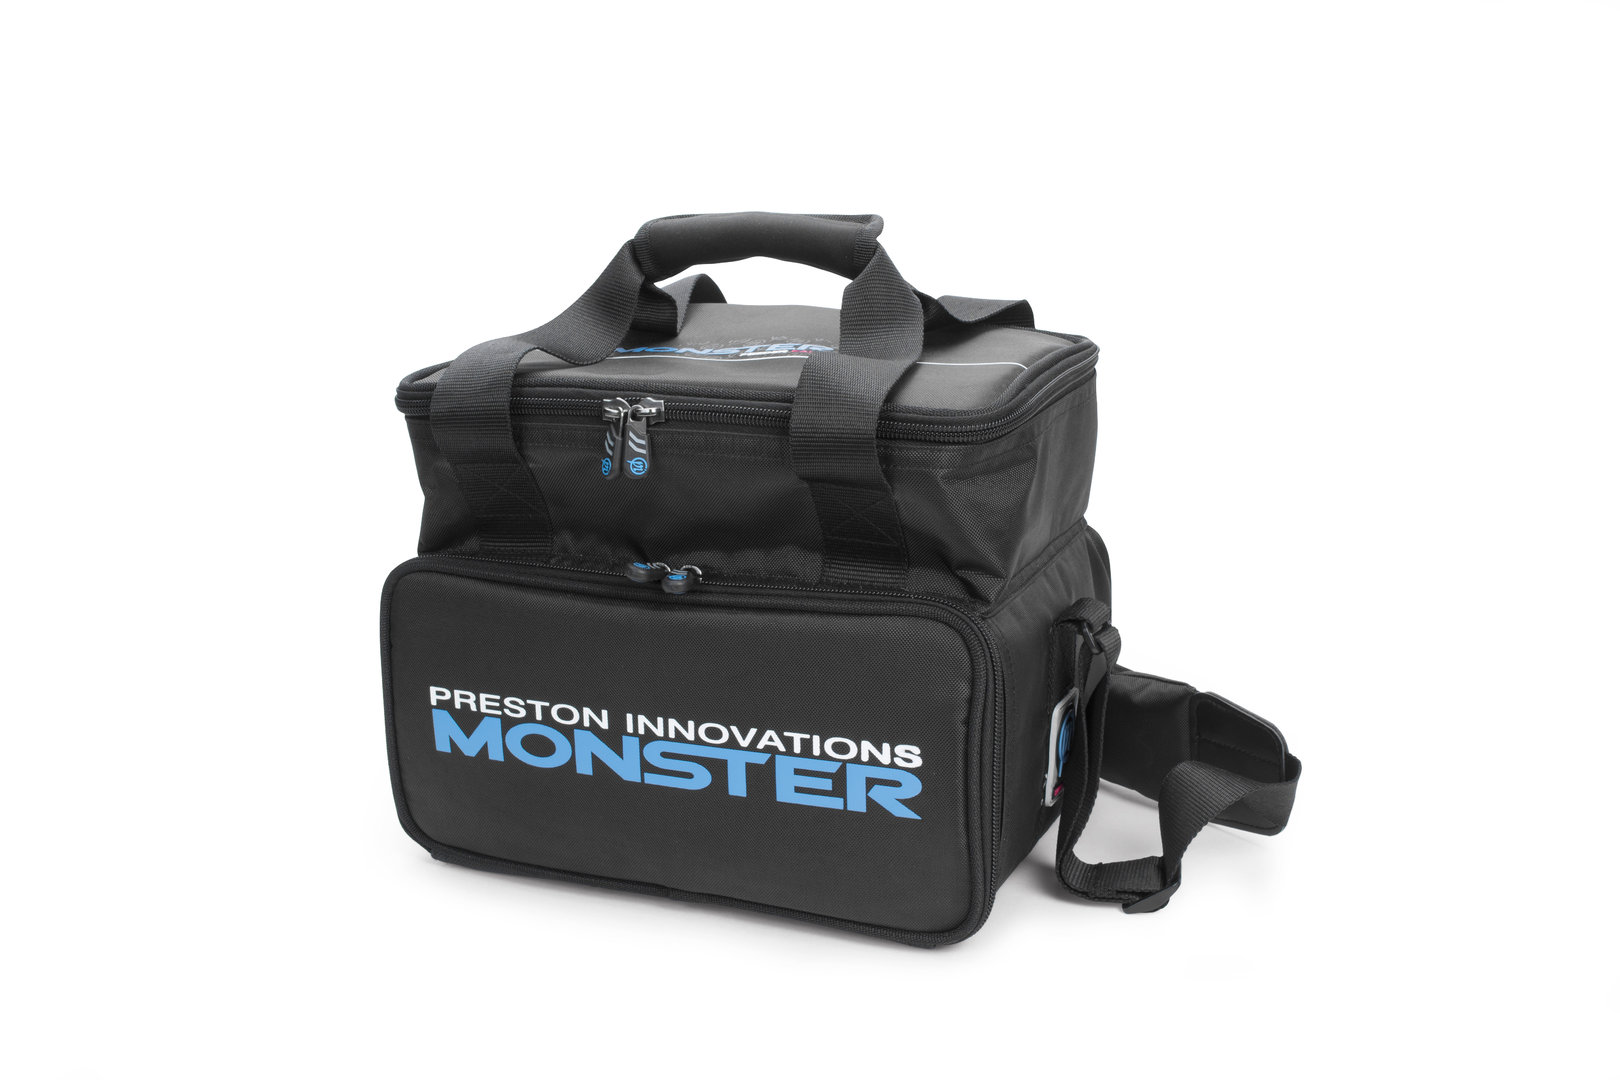 Preston Monster® Feeder Case - Futterkorbtasche